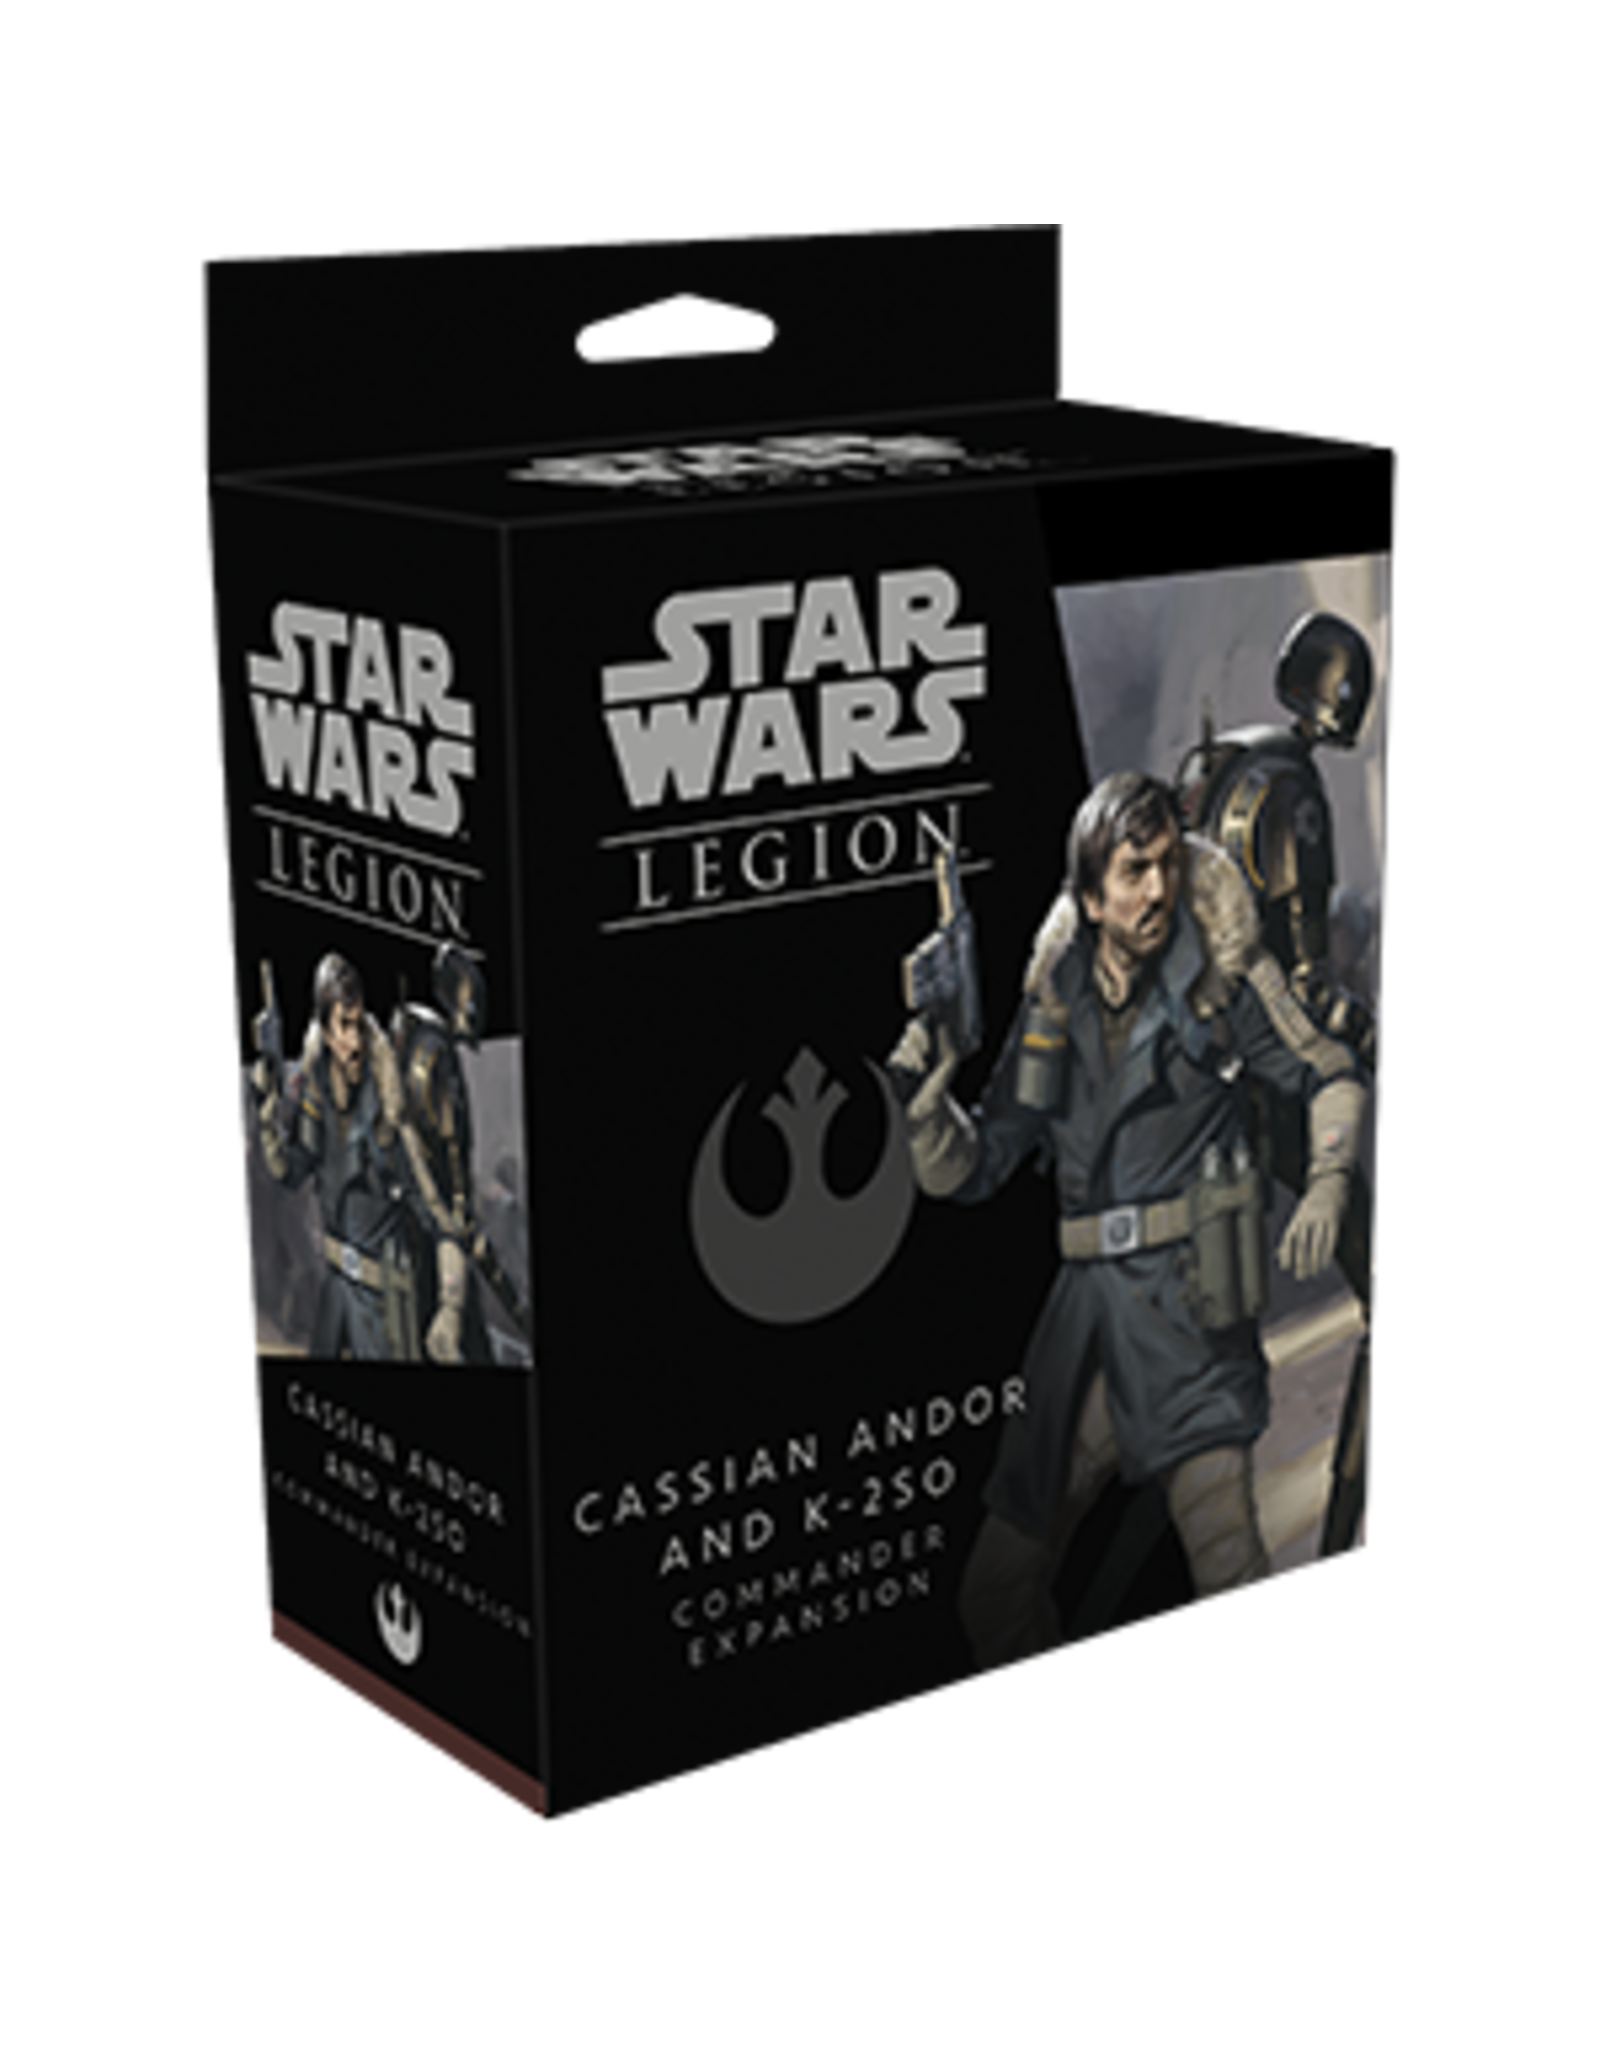 Star Wars Legion - Cassian Andor & K-2SO